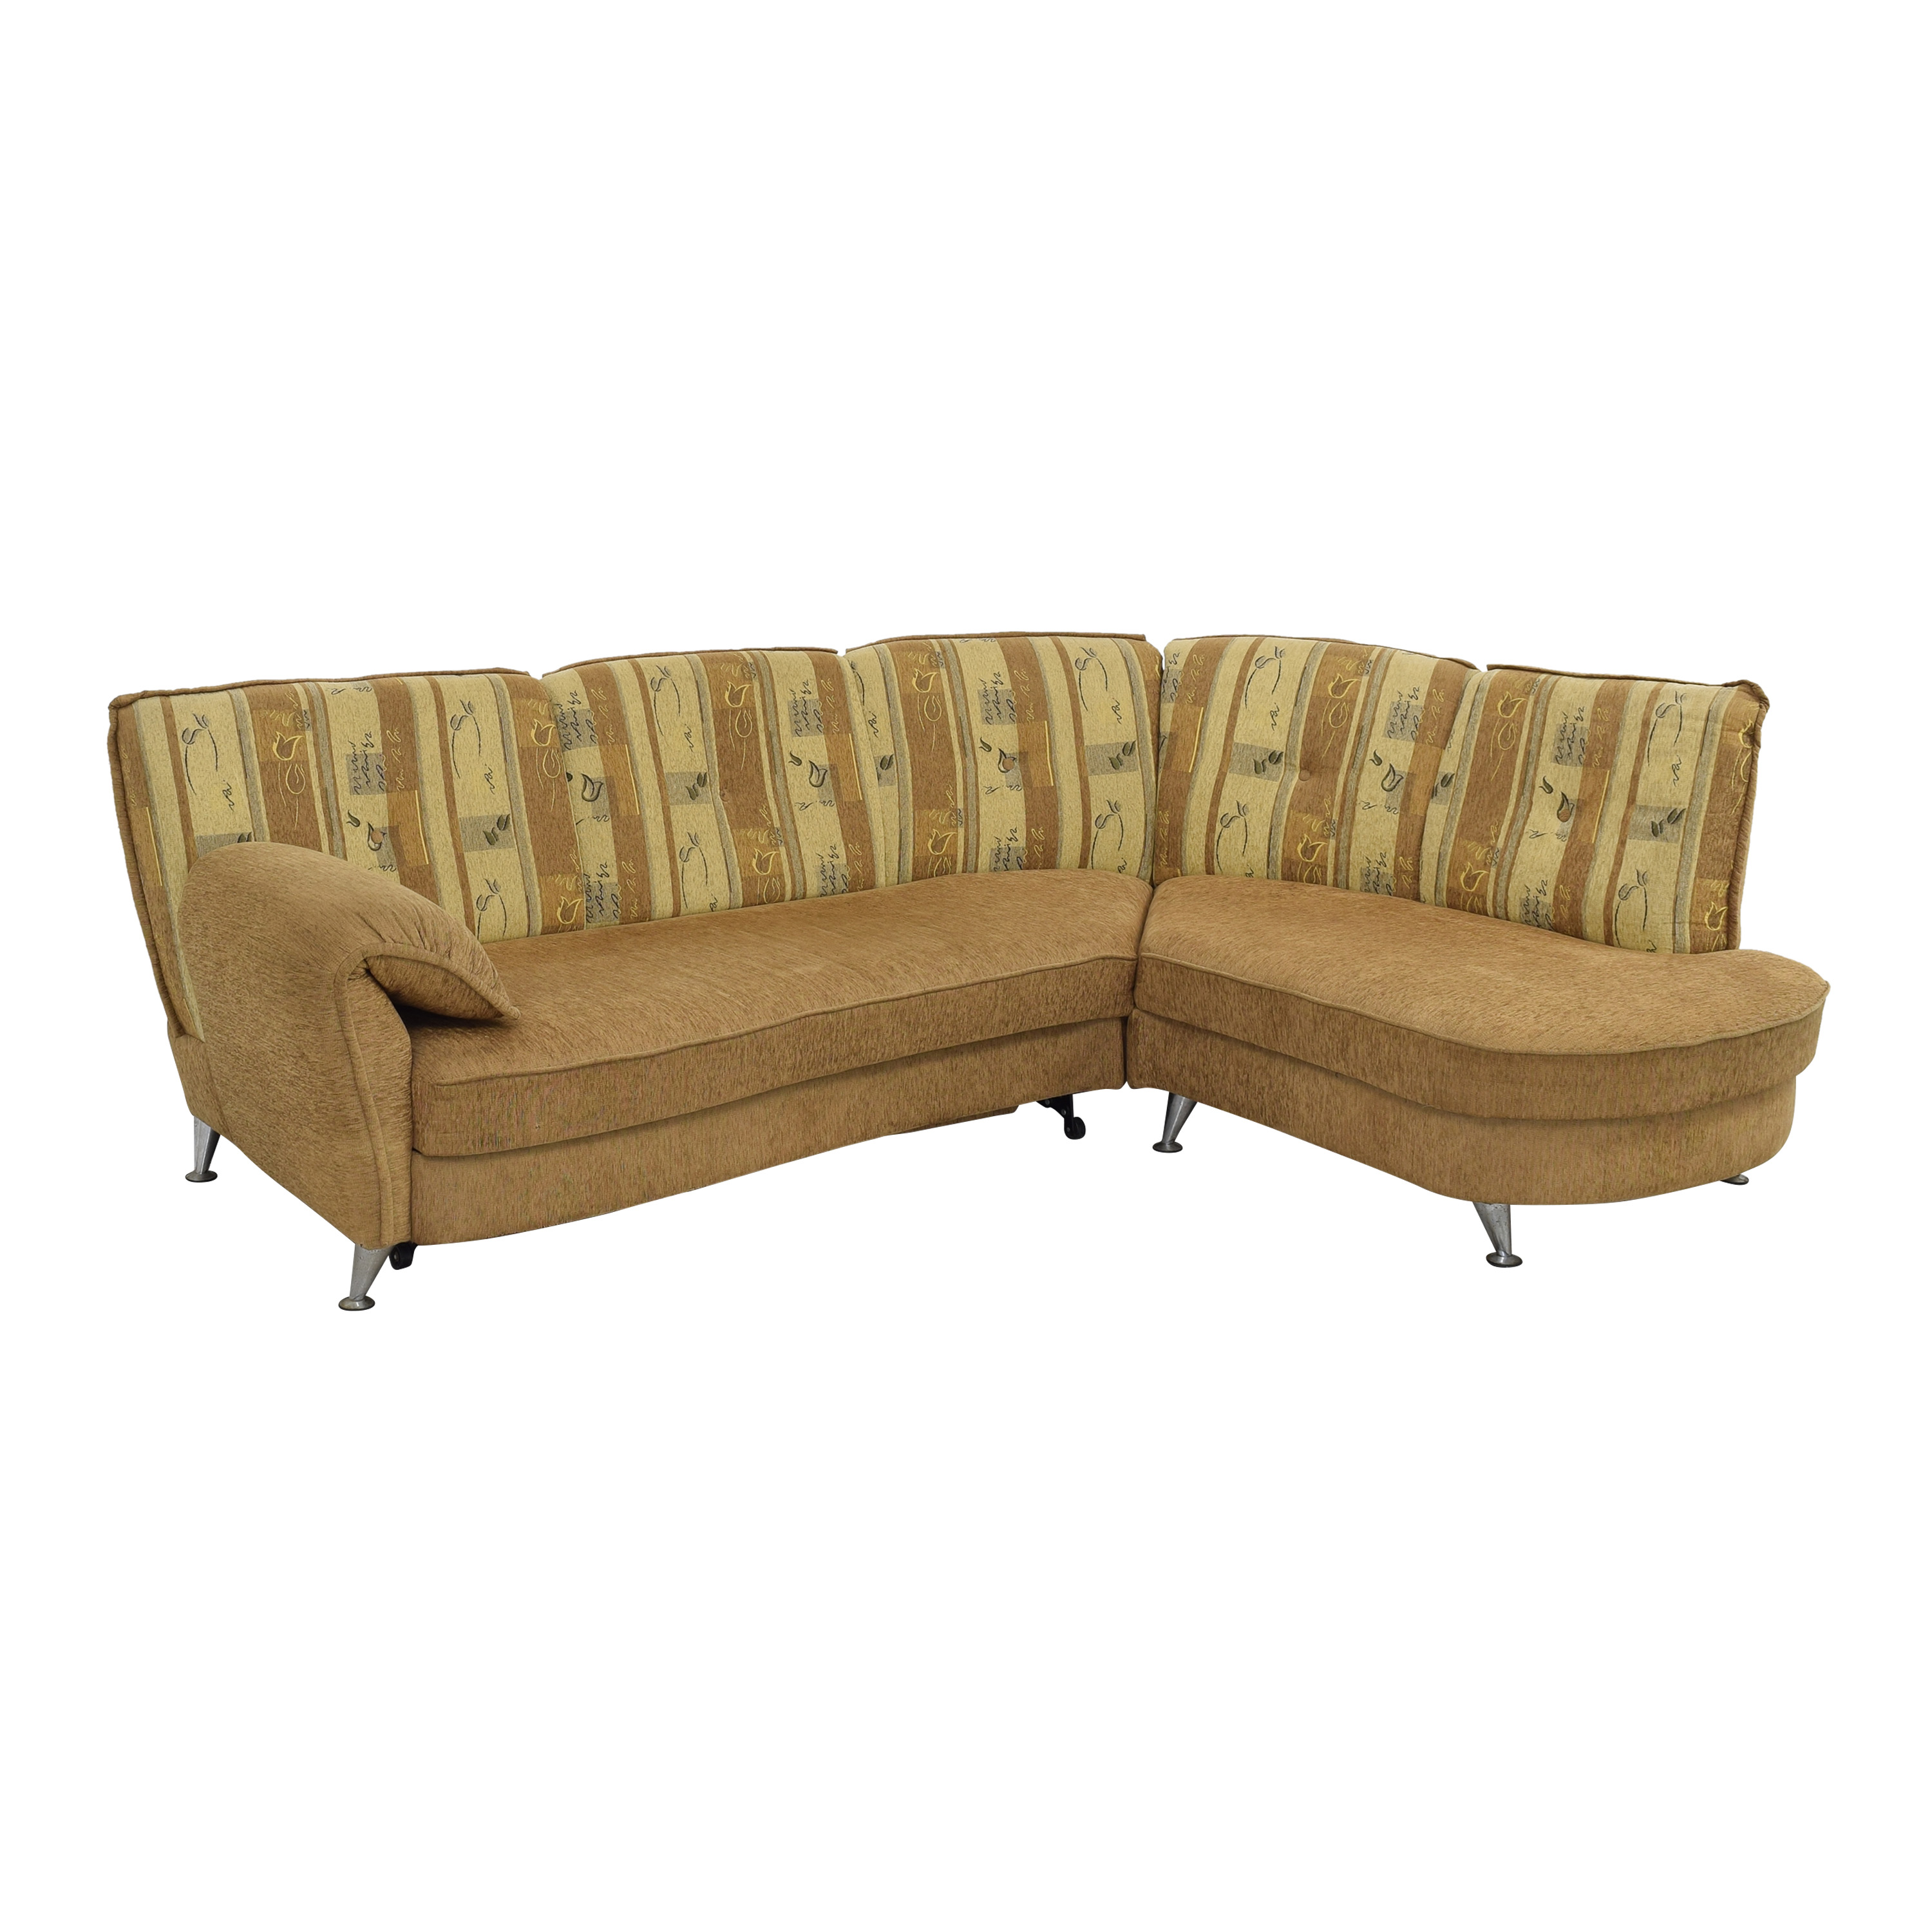 shop  Curved Sectional Sofa with Foldout Bed online